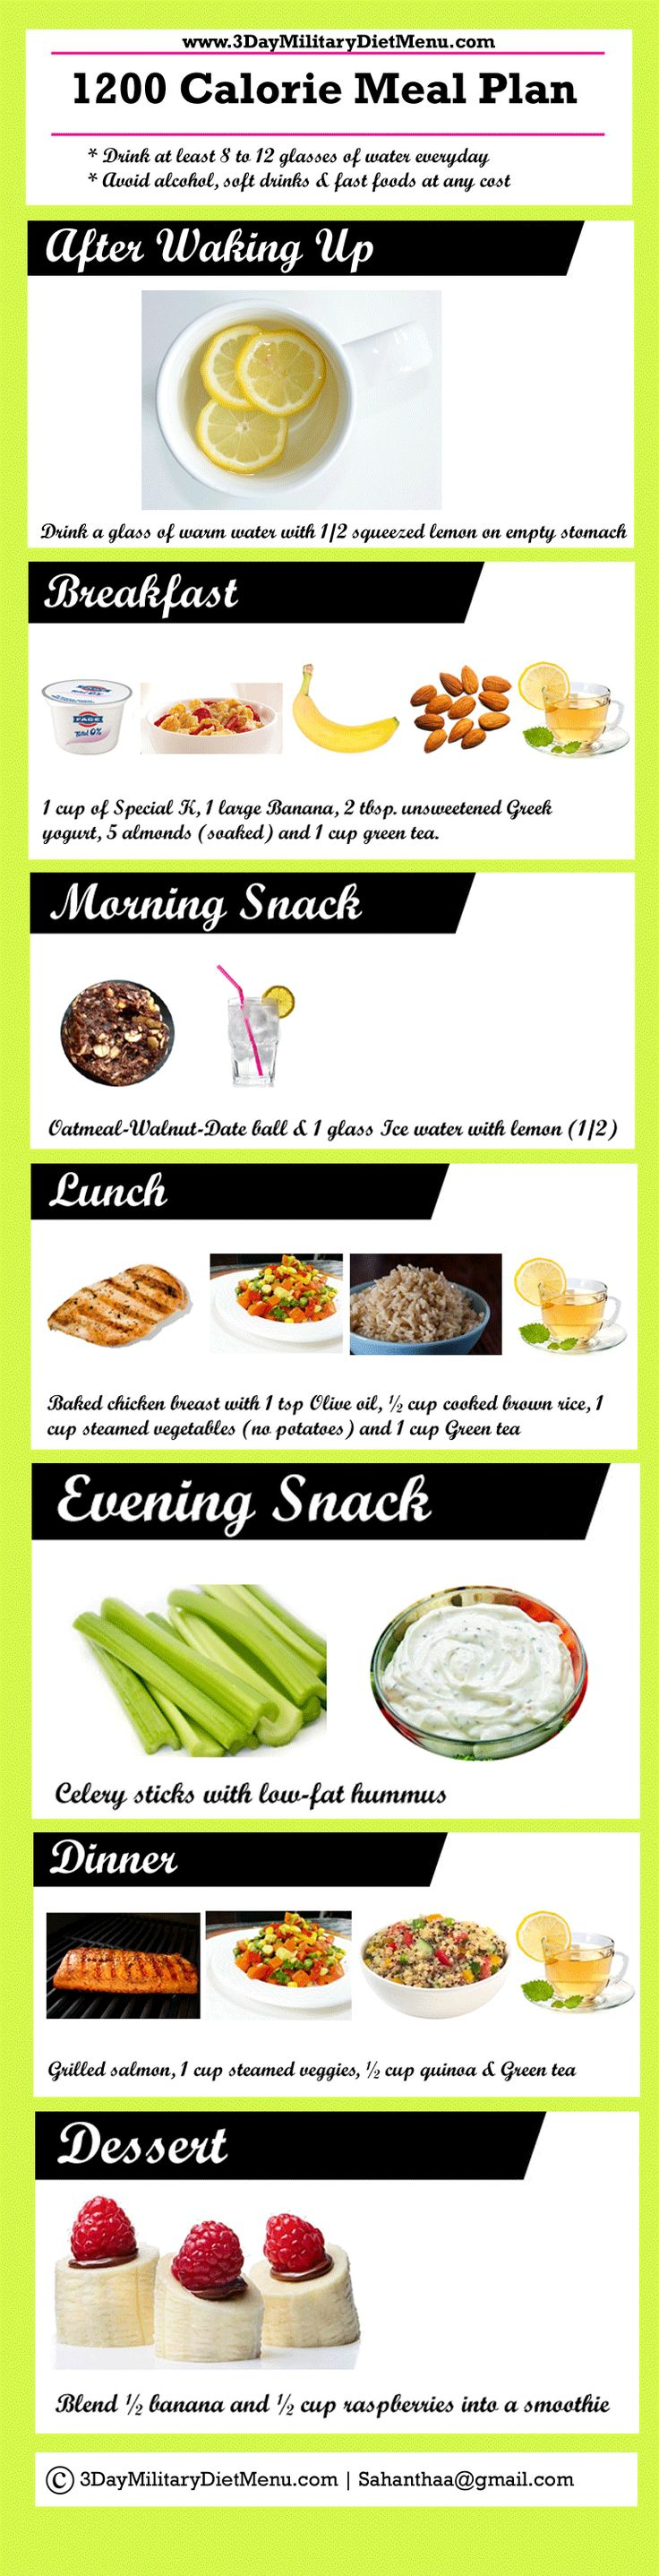 military diet four day off meal plan - follow 1200 calorie diet plan for additional weight loss.